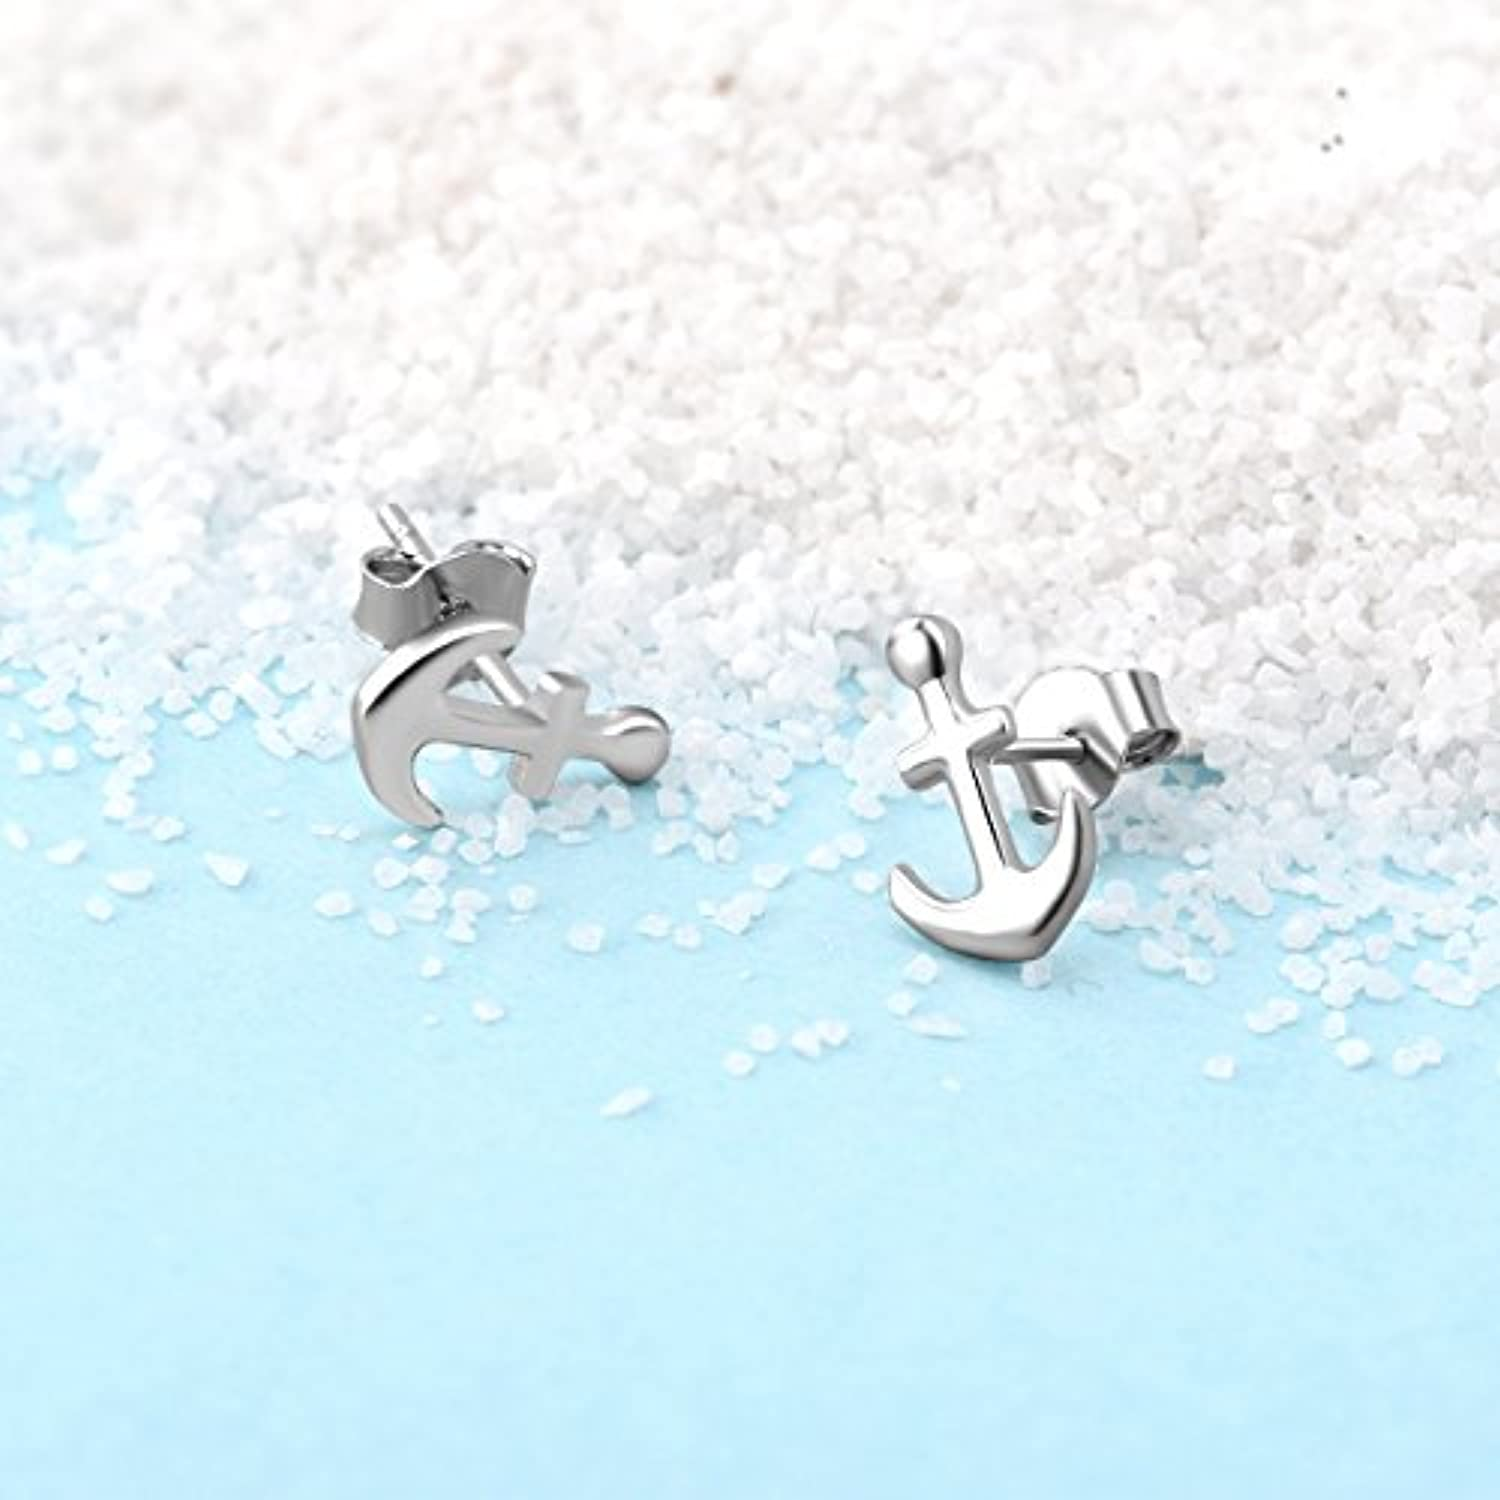 Anchor Earrings Sterling Silver Small Minimalist Hypoallergenic Nautical Stud Earrings for Women Birthday Gift